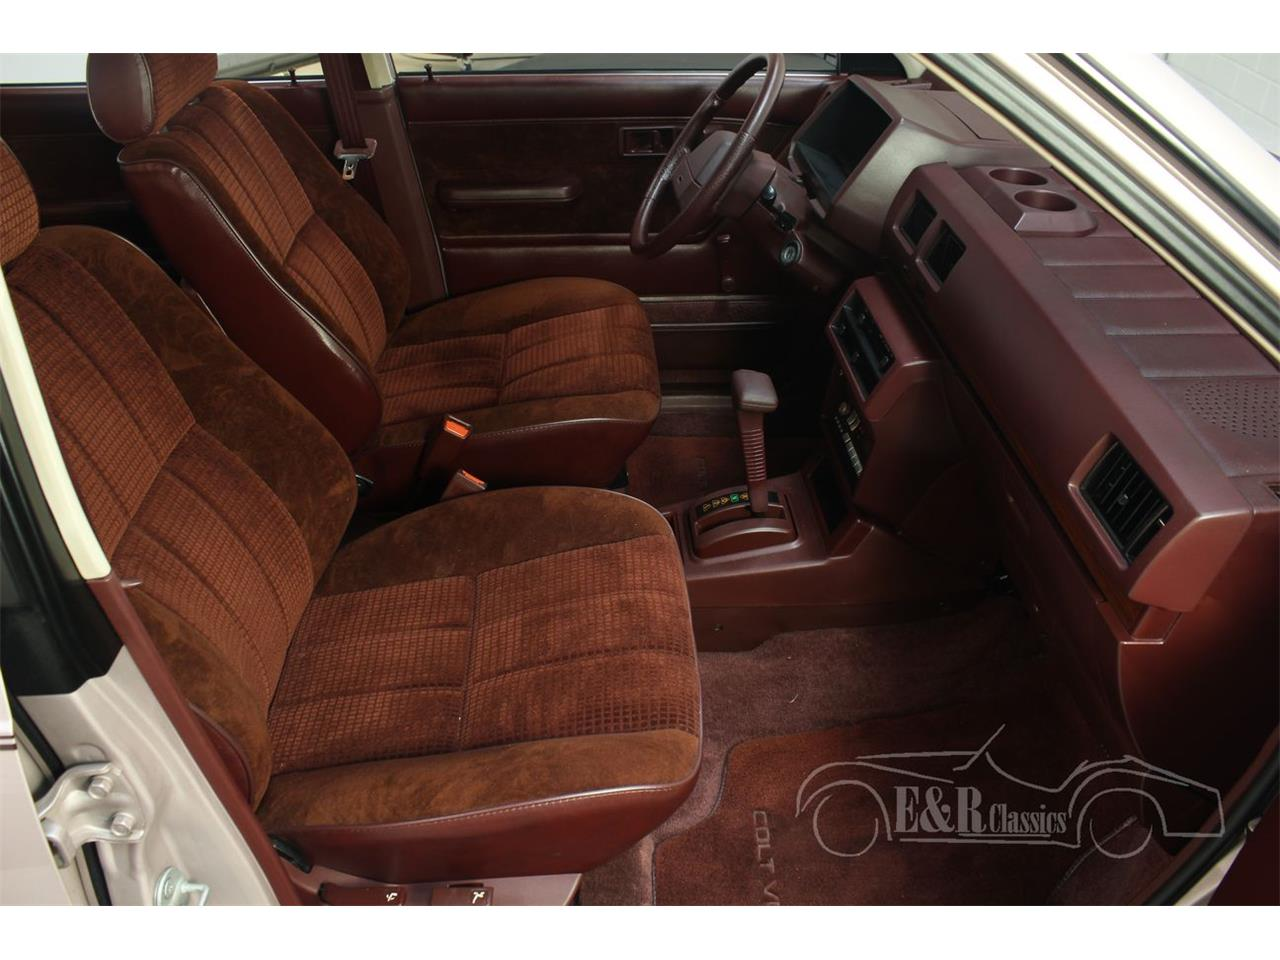 Large Picture of '87 Colt located in [nl] Pays-Bas Offered by E & R Classics - PVV4